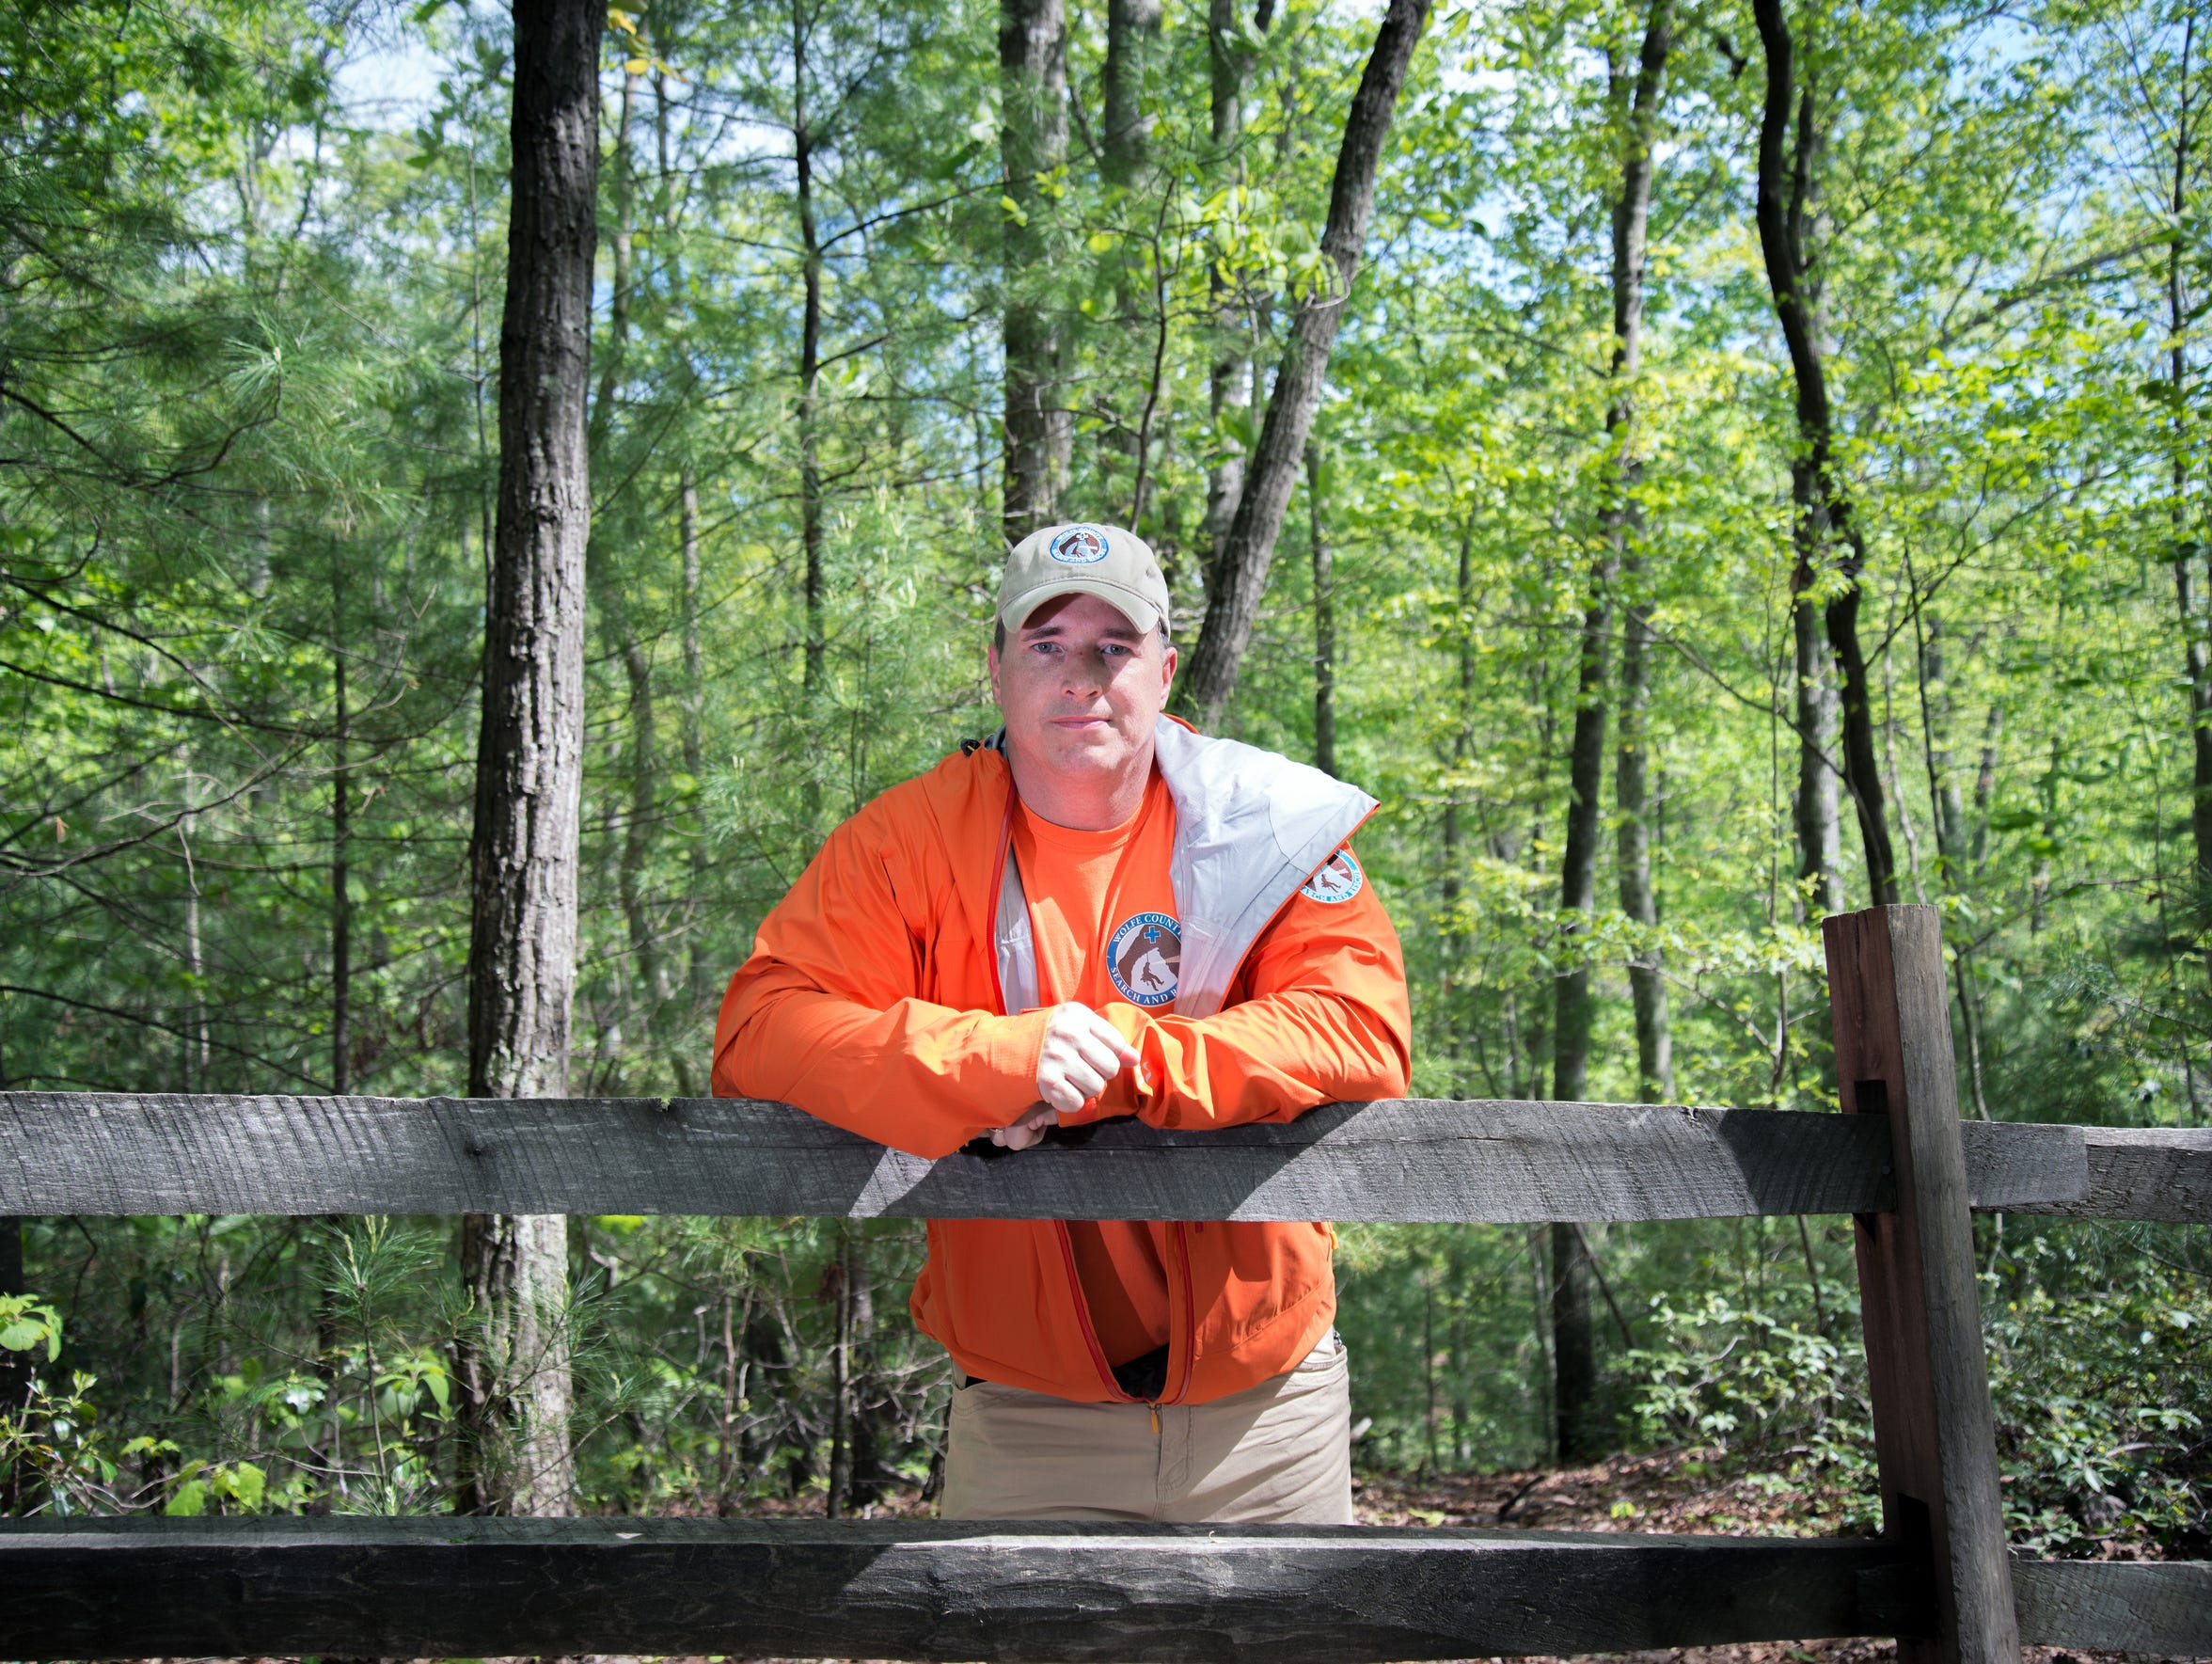 John May, deputy chief of the Wolfe County Search and